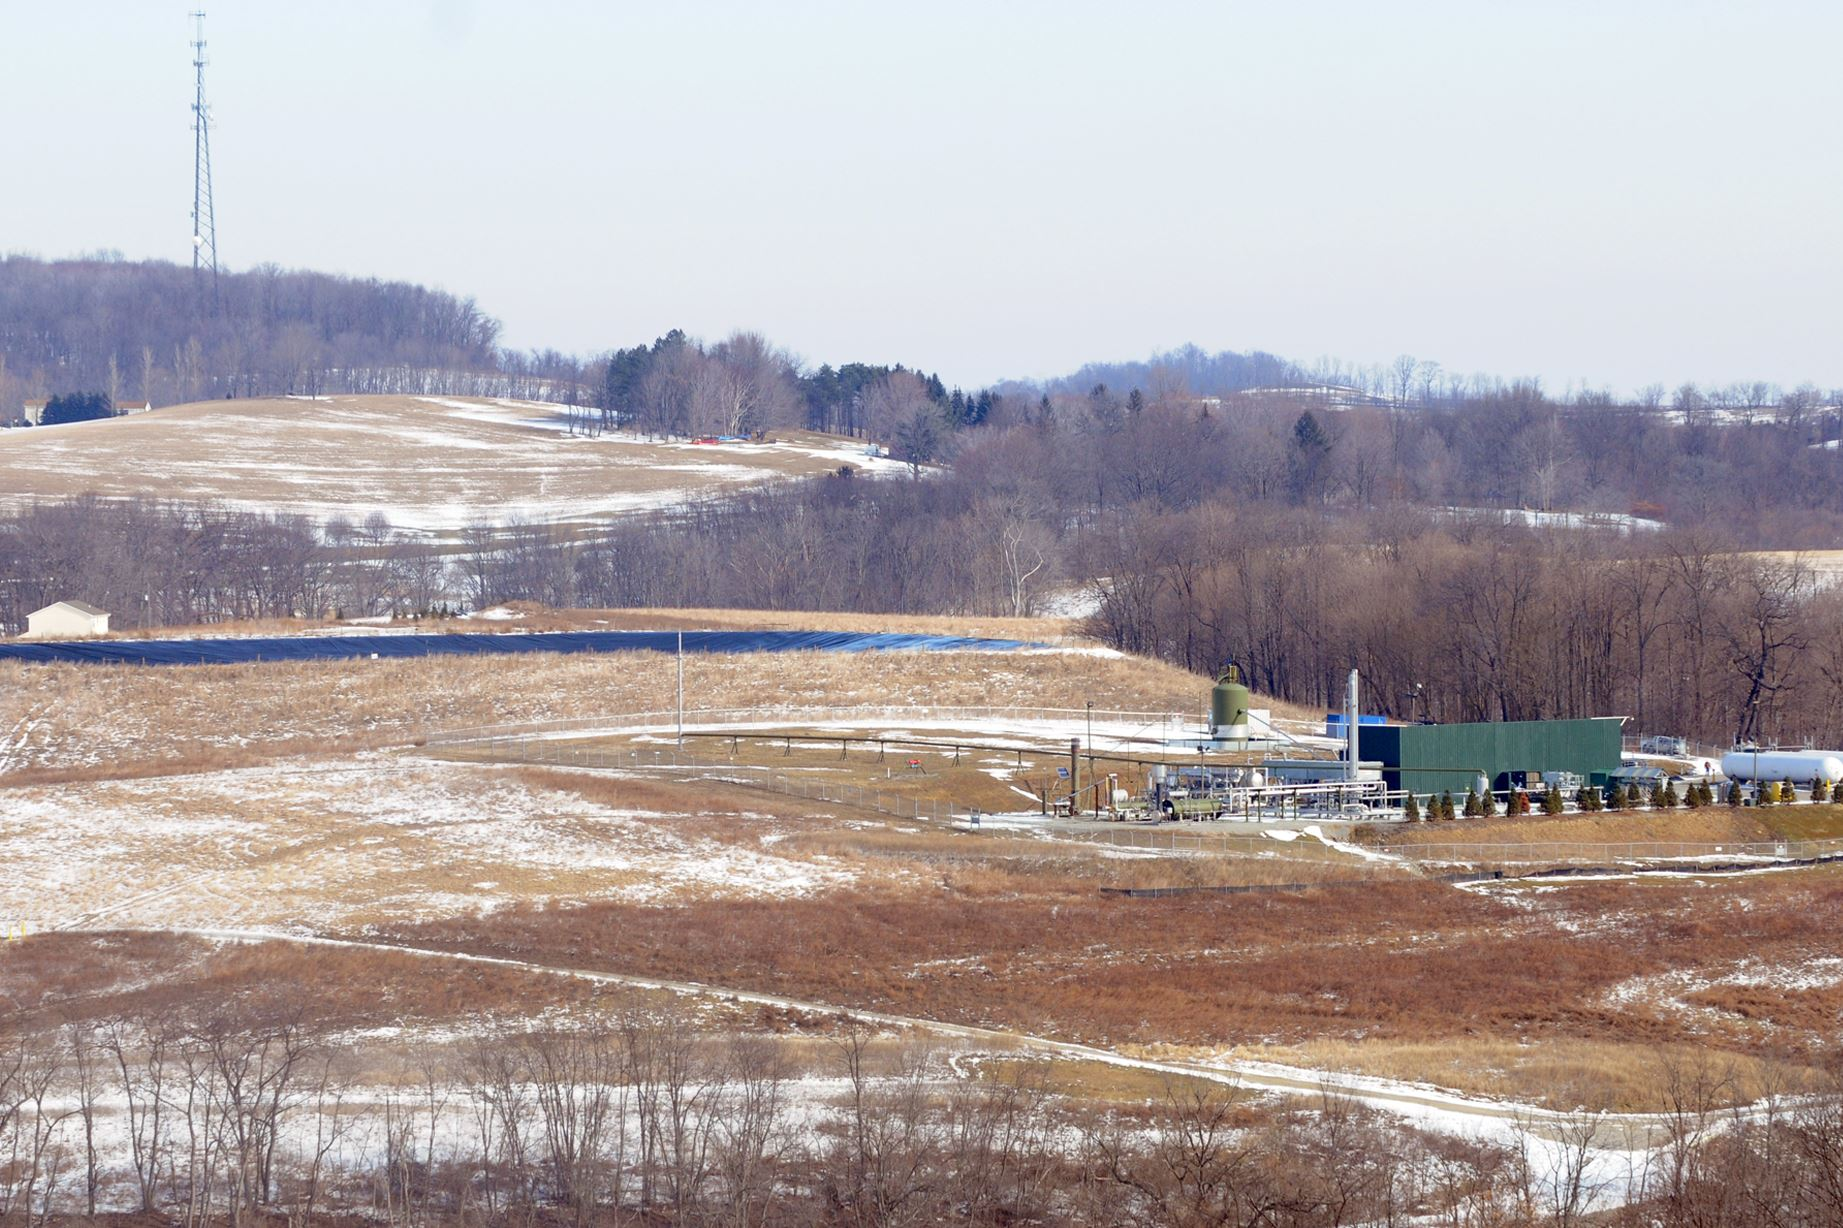 20150224lfLiquids A bill in the Pennsylvania Senate benefits the oil and gas industry by sacrificing landowners' bargaining power, advocates for royalty owners say.